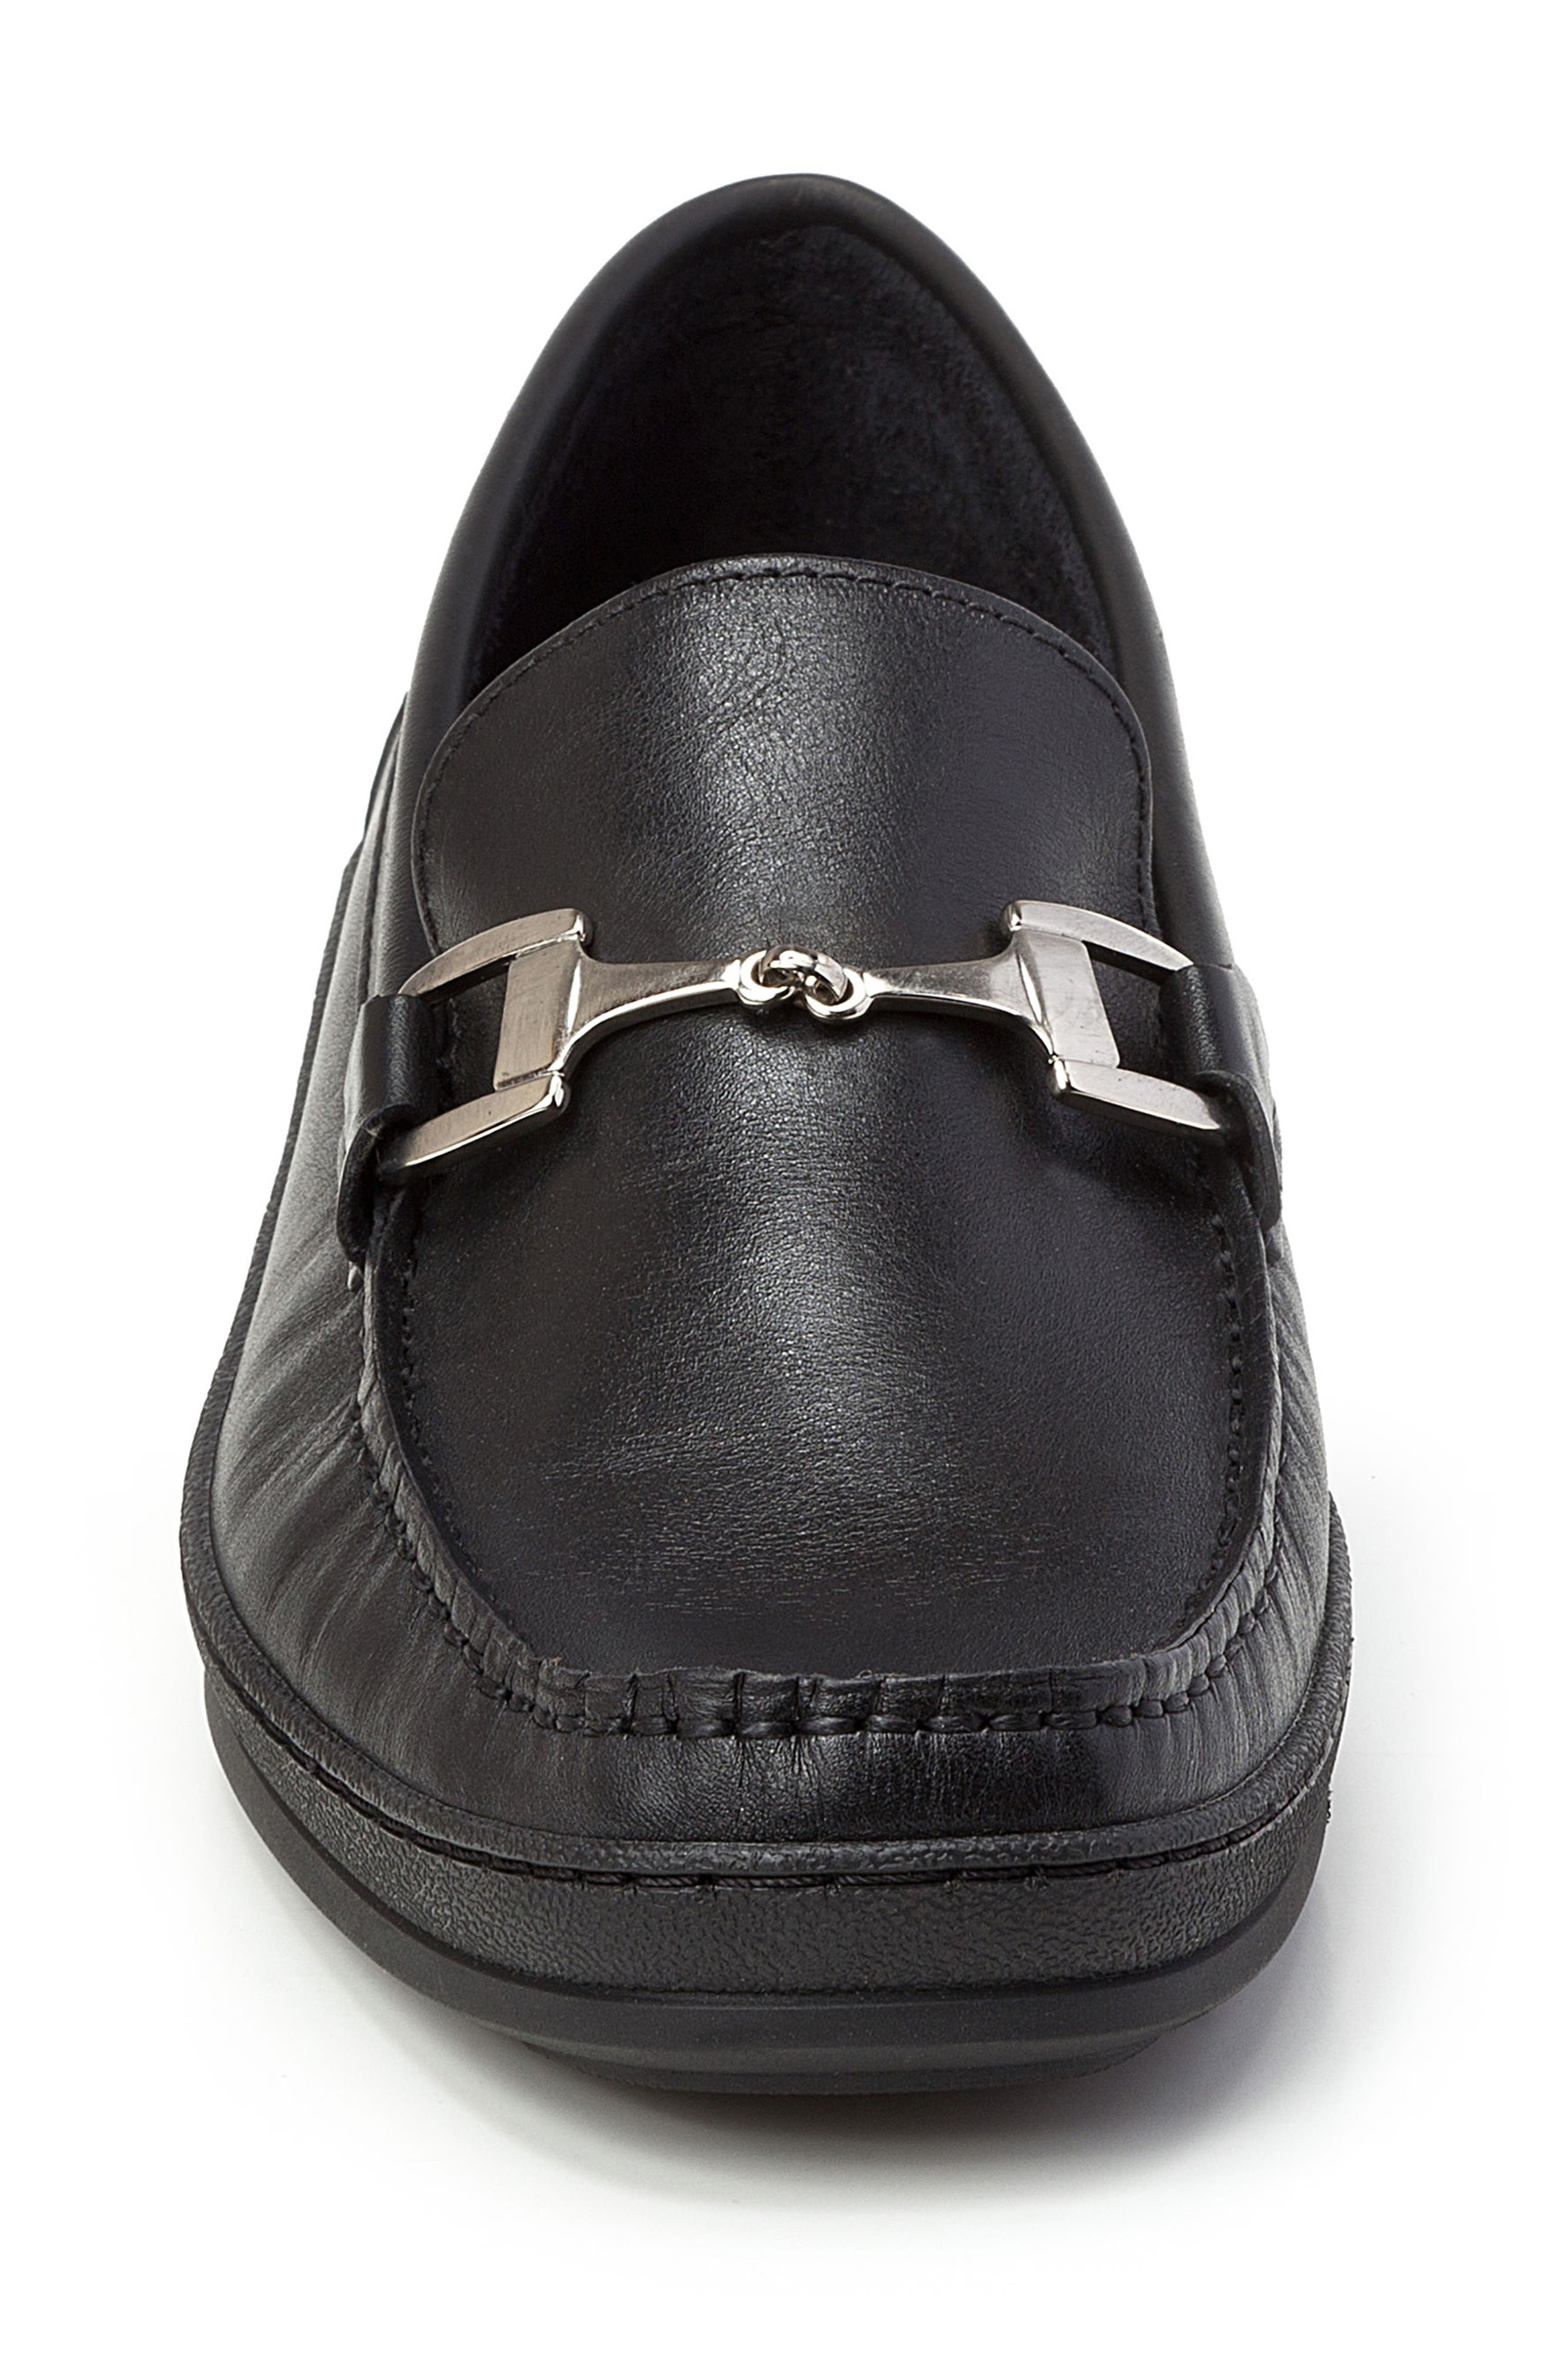 Navarro Bit Loafer,                             Alternate thumbnail 4, color,                             001